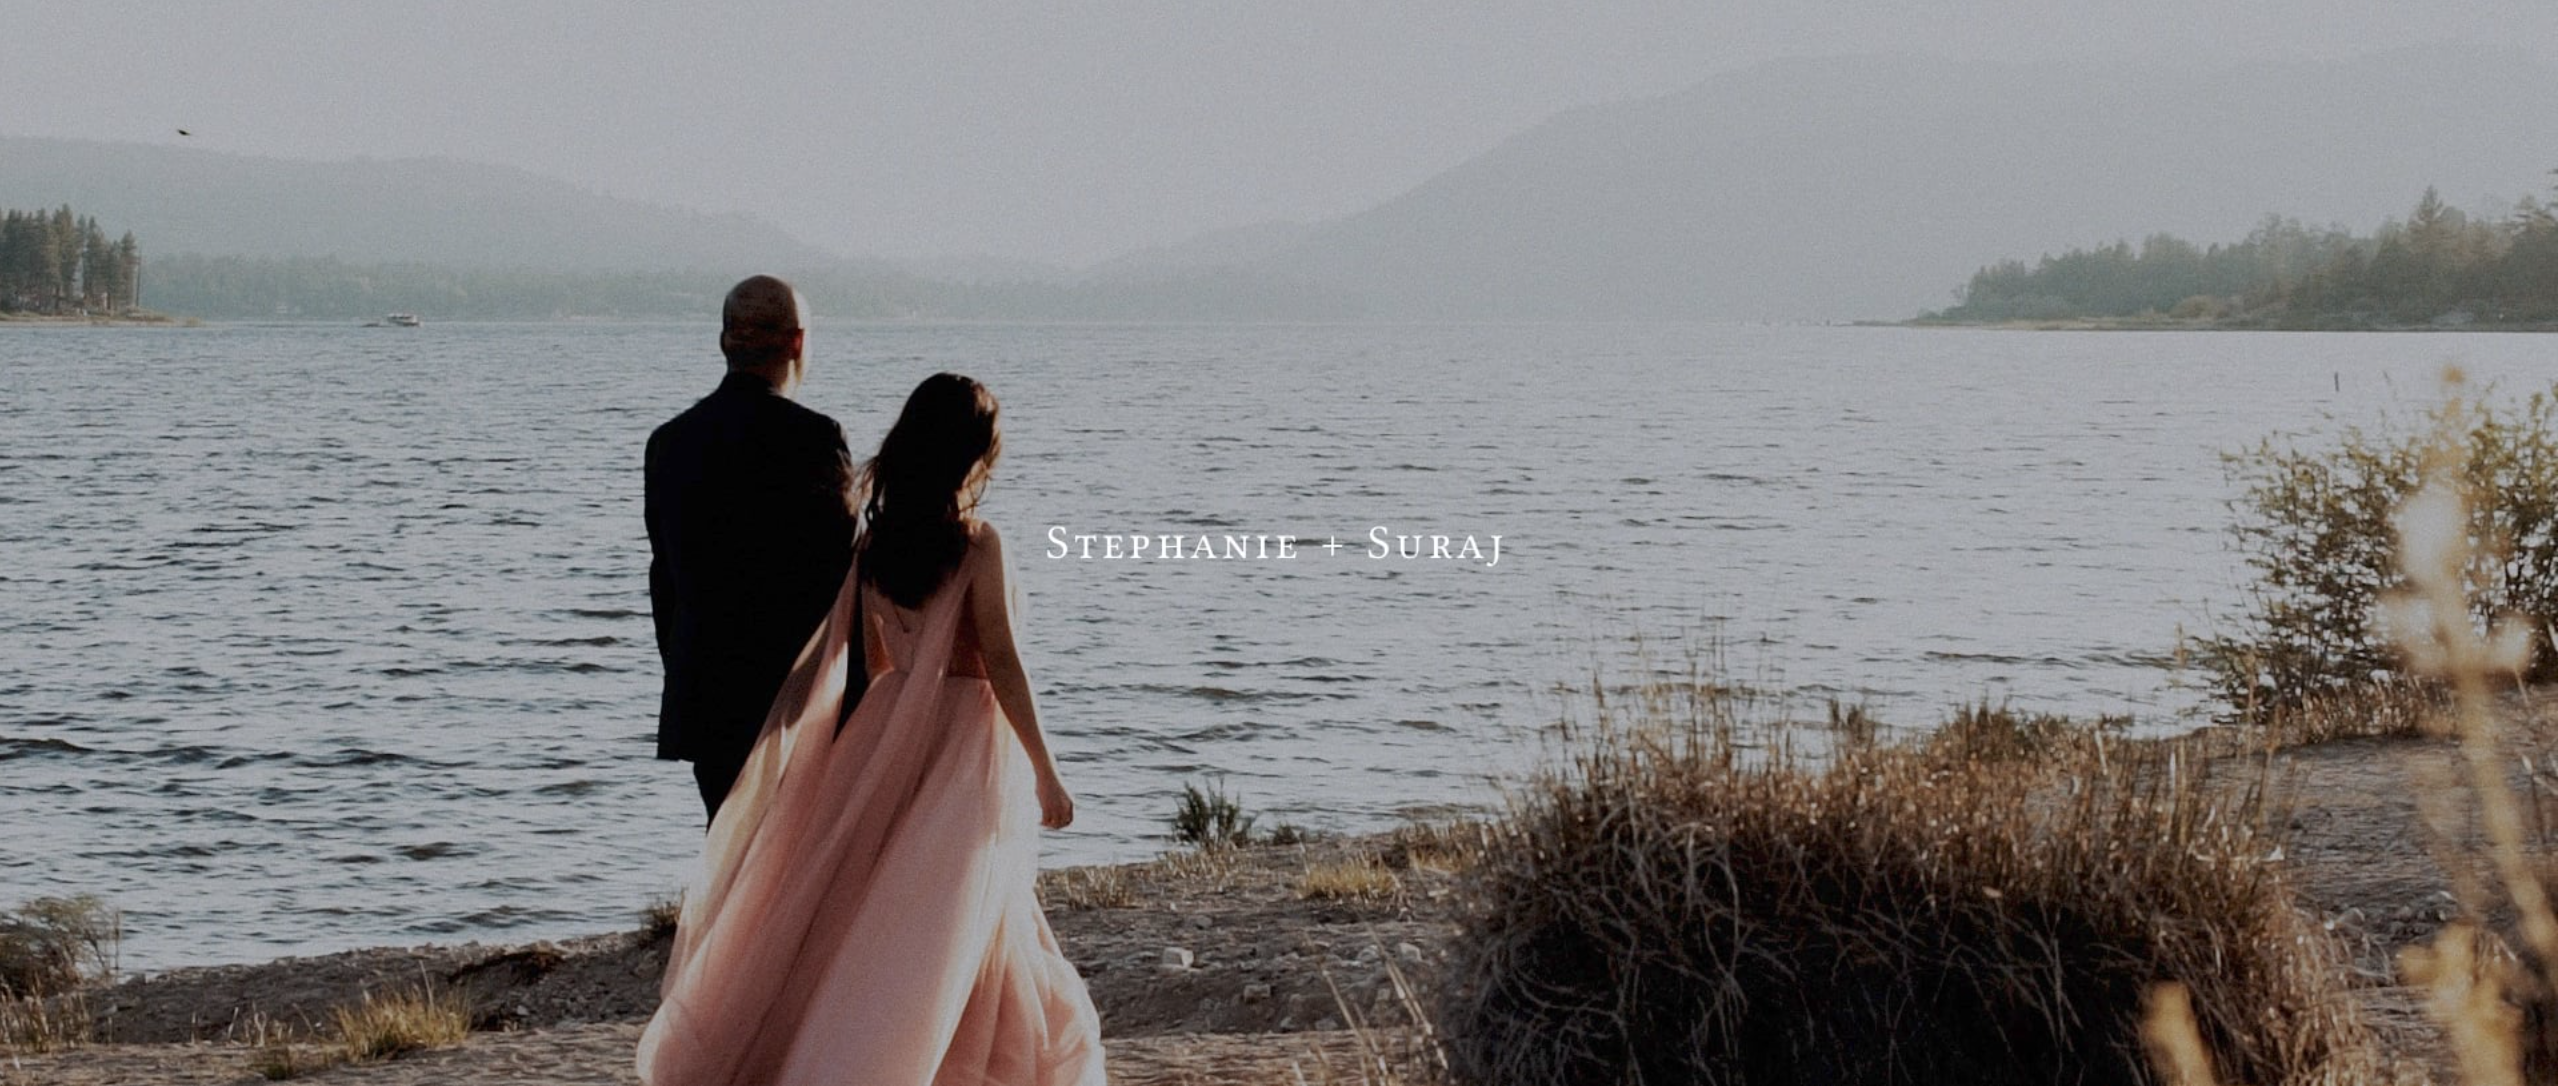 Stephanie + Surage | Lake Arrowhead, California | lake arrowhead resort and spa